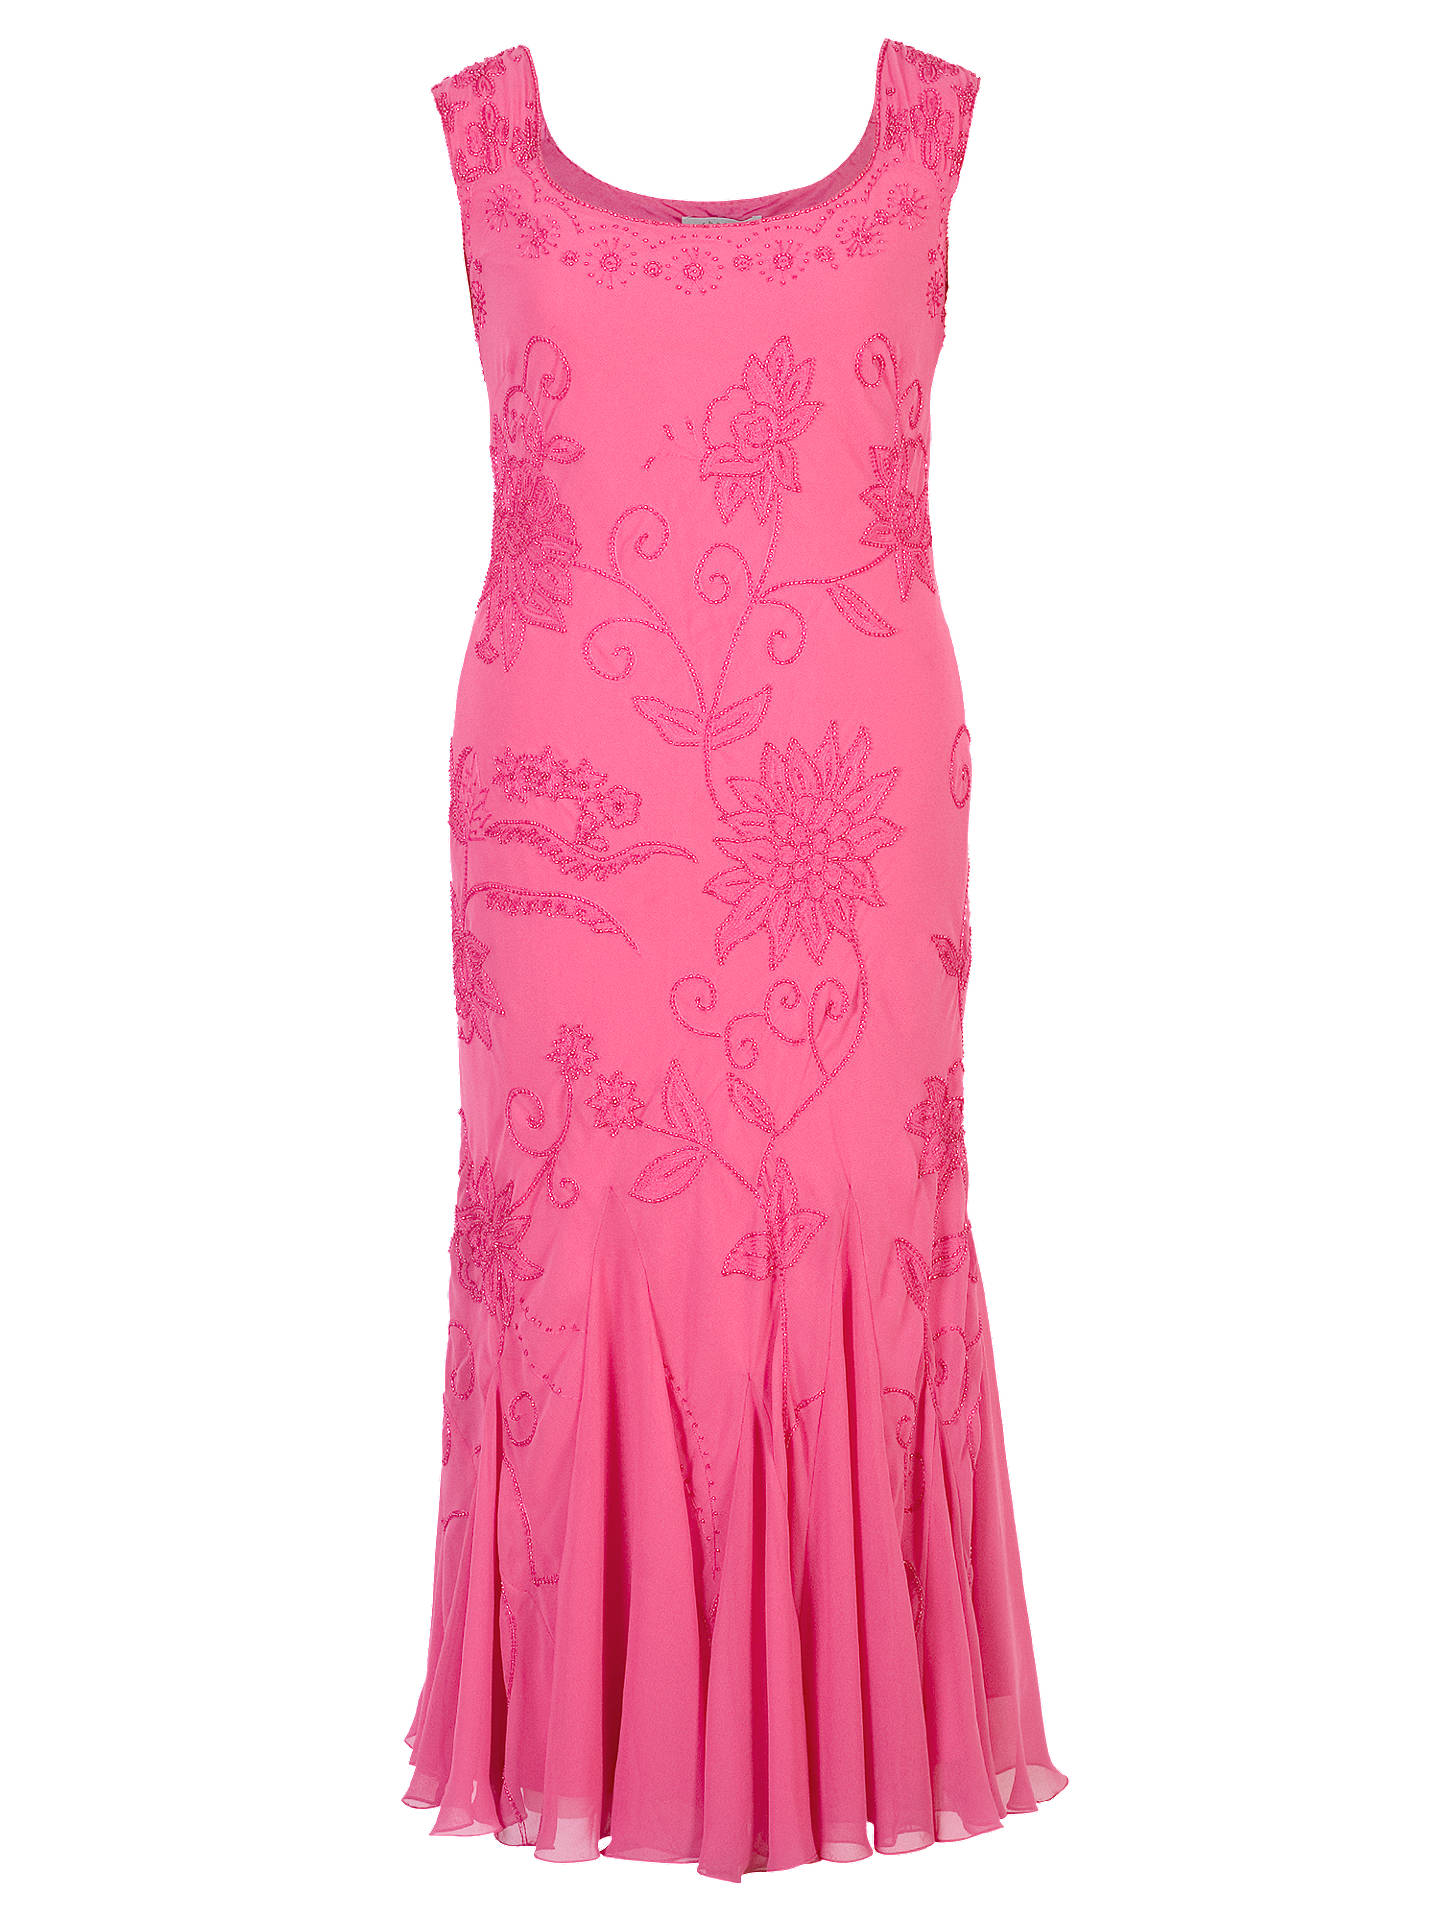 BuyChesca Embroidered Beaded Dress, Rose Pink, 12 Online at johnlewis.com